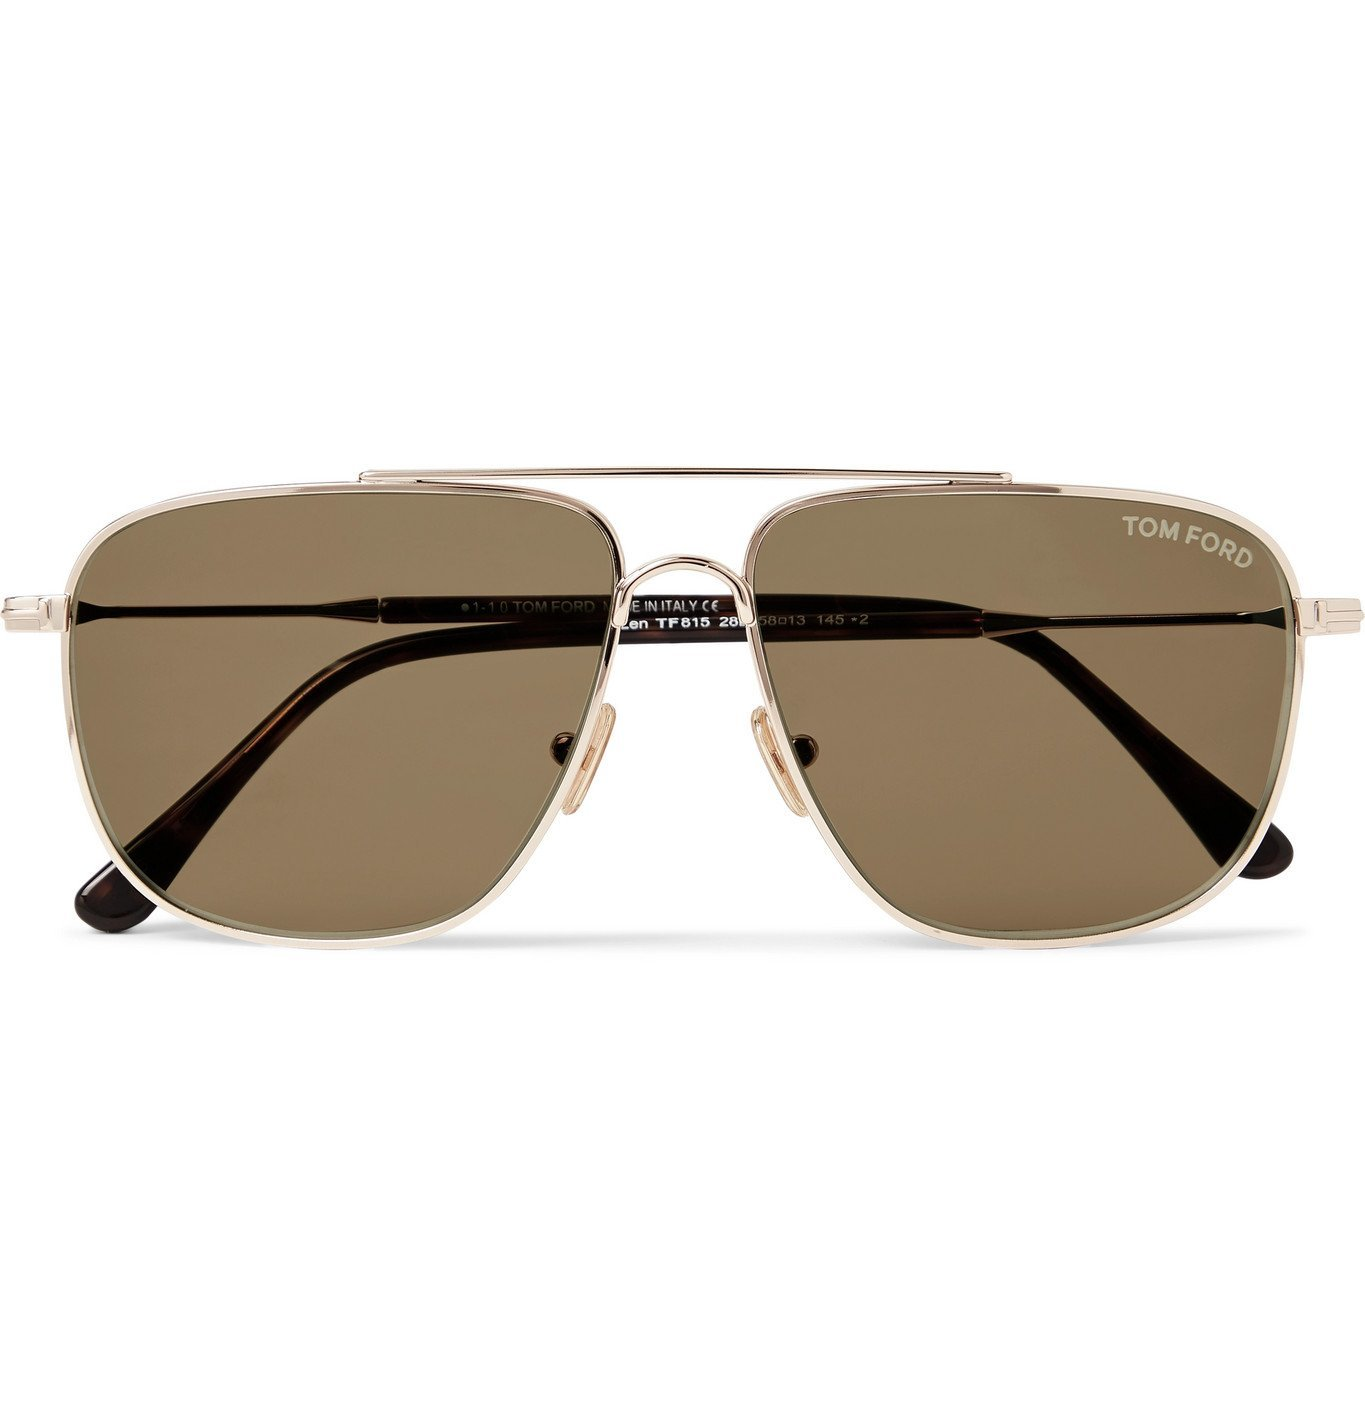 Photo: TOM FORD - Aviator-Style Gold-Tone and Tortoiseshell Acetate Sunglasses - Gold